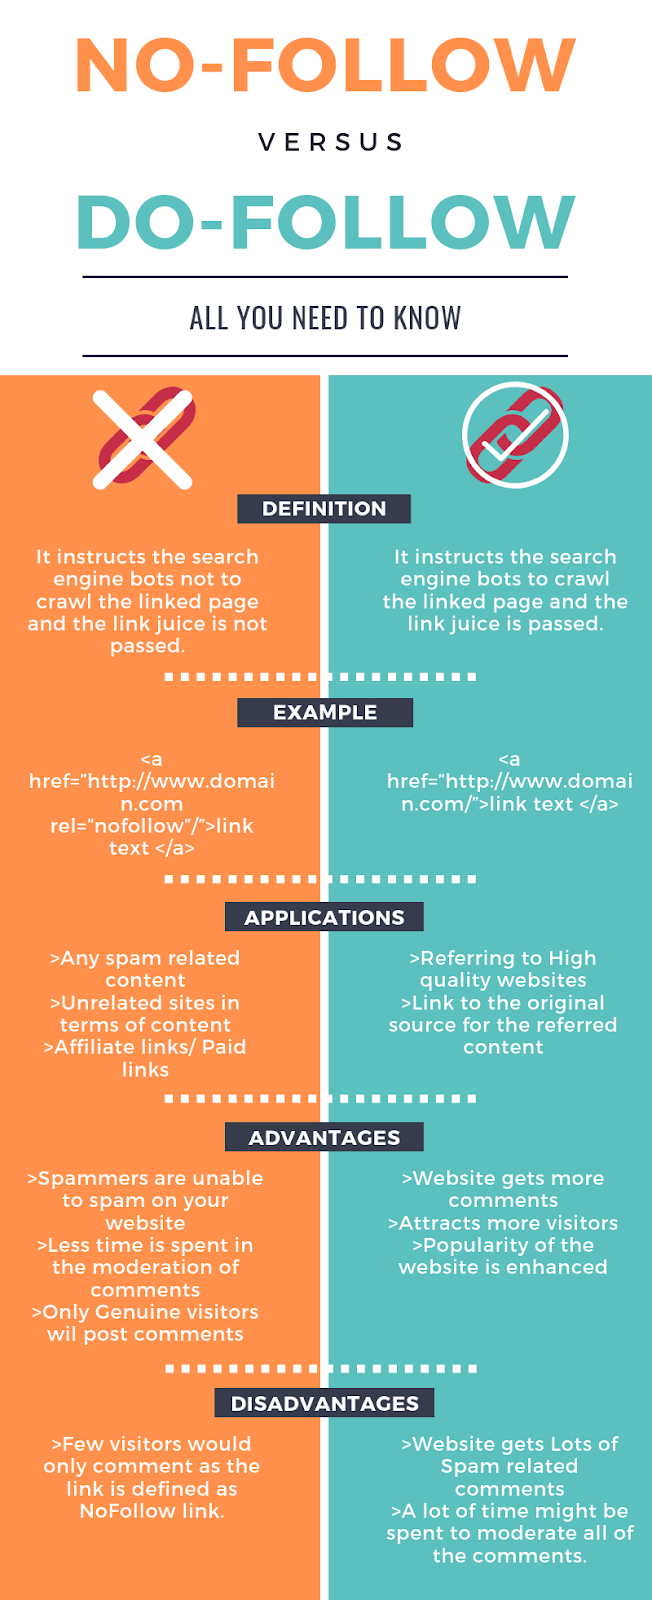 Nofollow and Dofollow difference [INFOGRAPHIC]